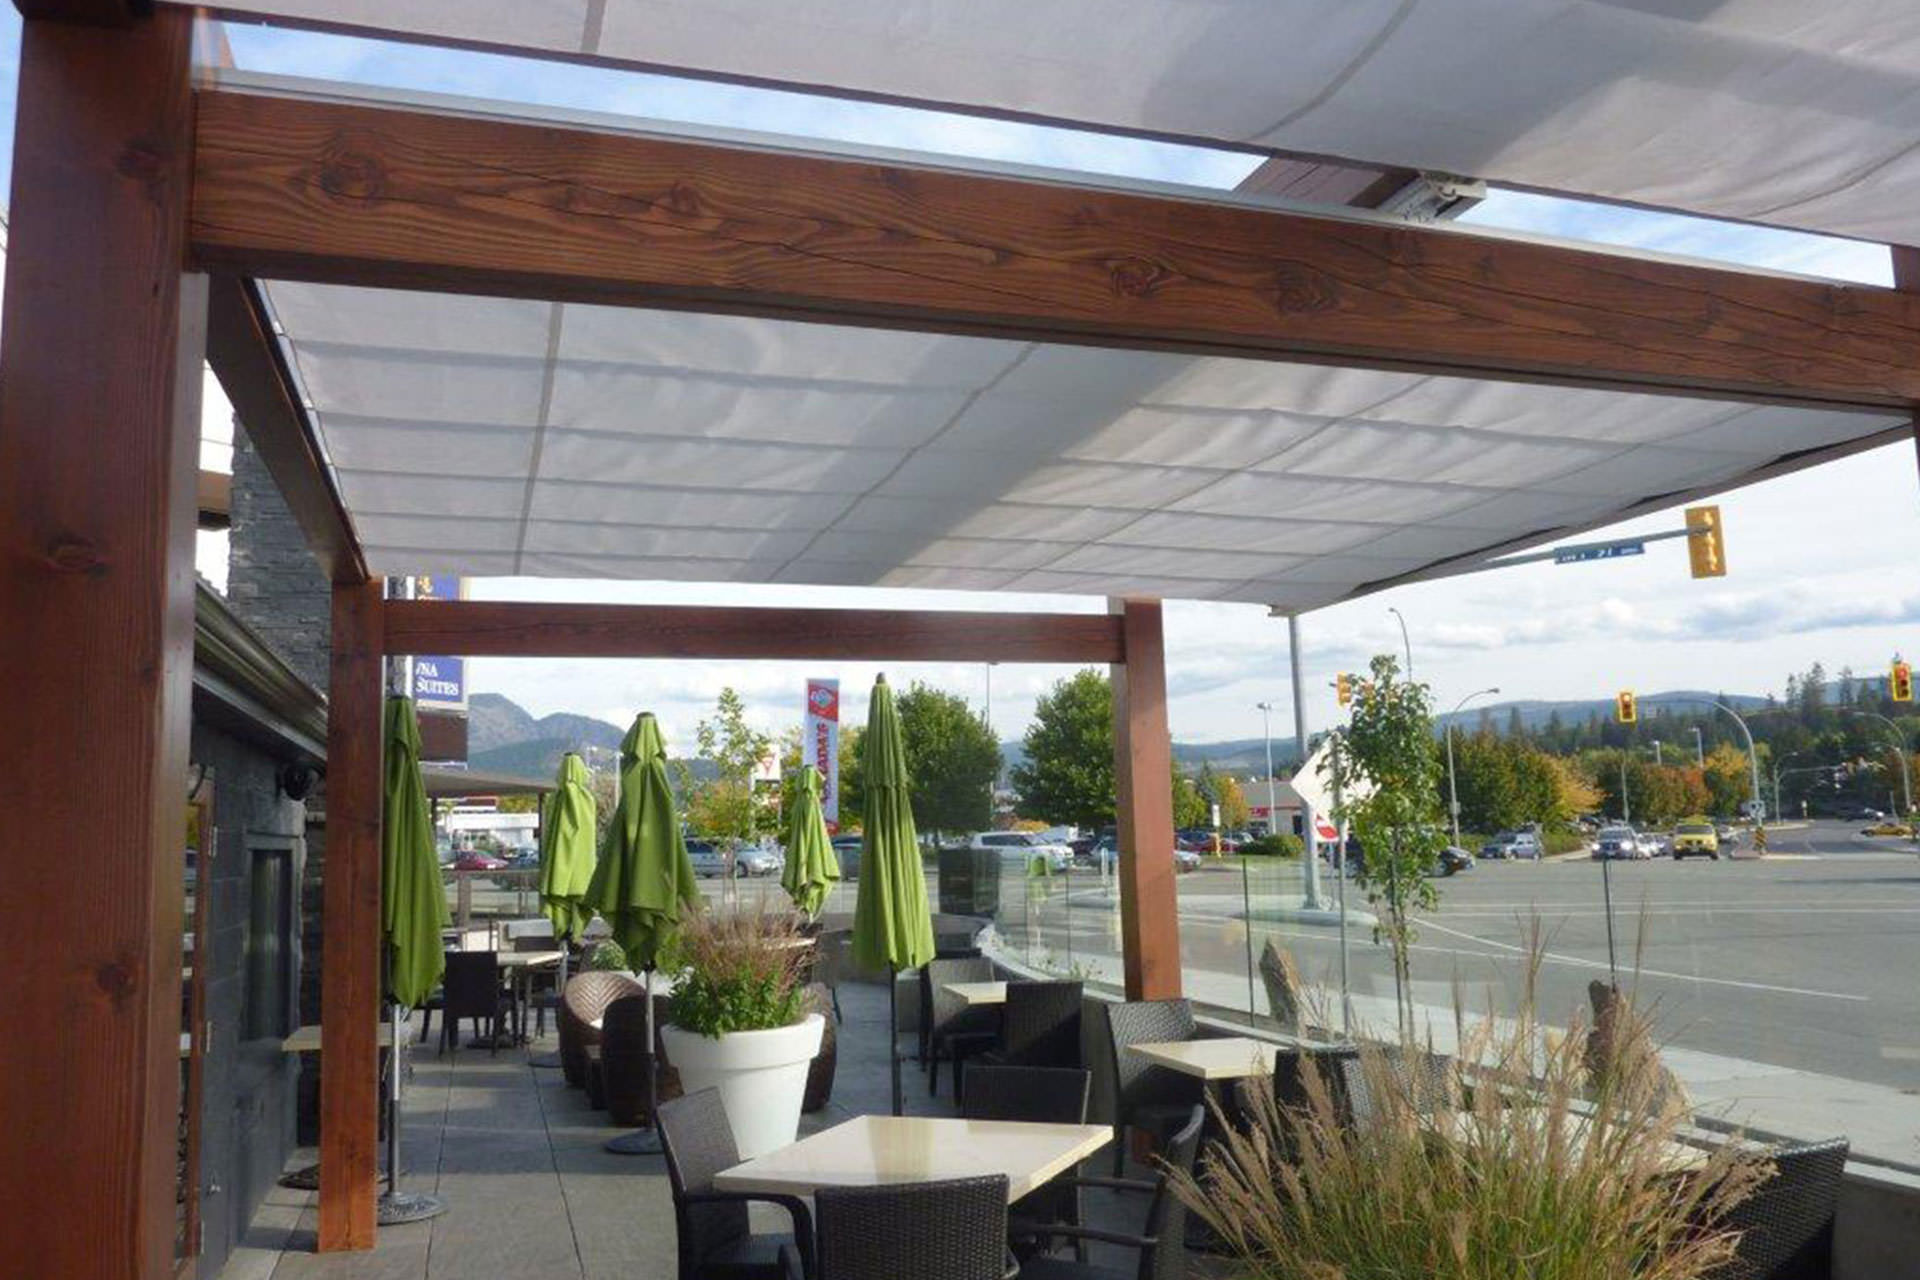 Outdoor Canopies Product : Cantilevered retractable canopies ora restaurant